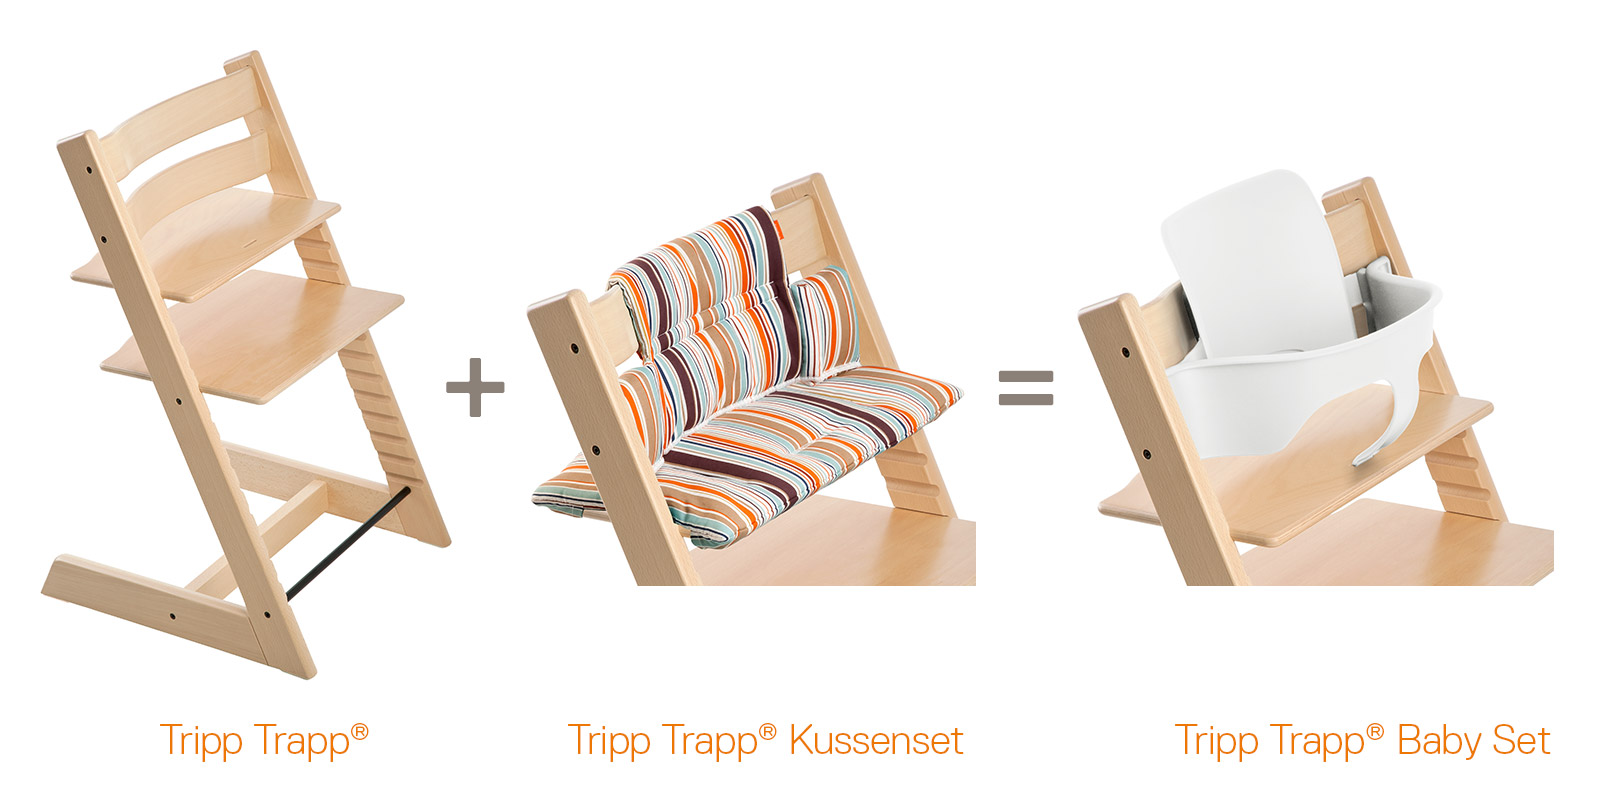 Tripp Trapp Baby Set Promotion Sept 2014